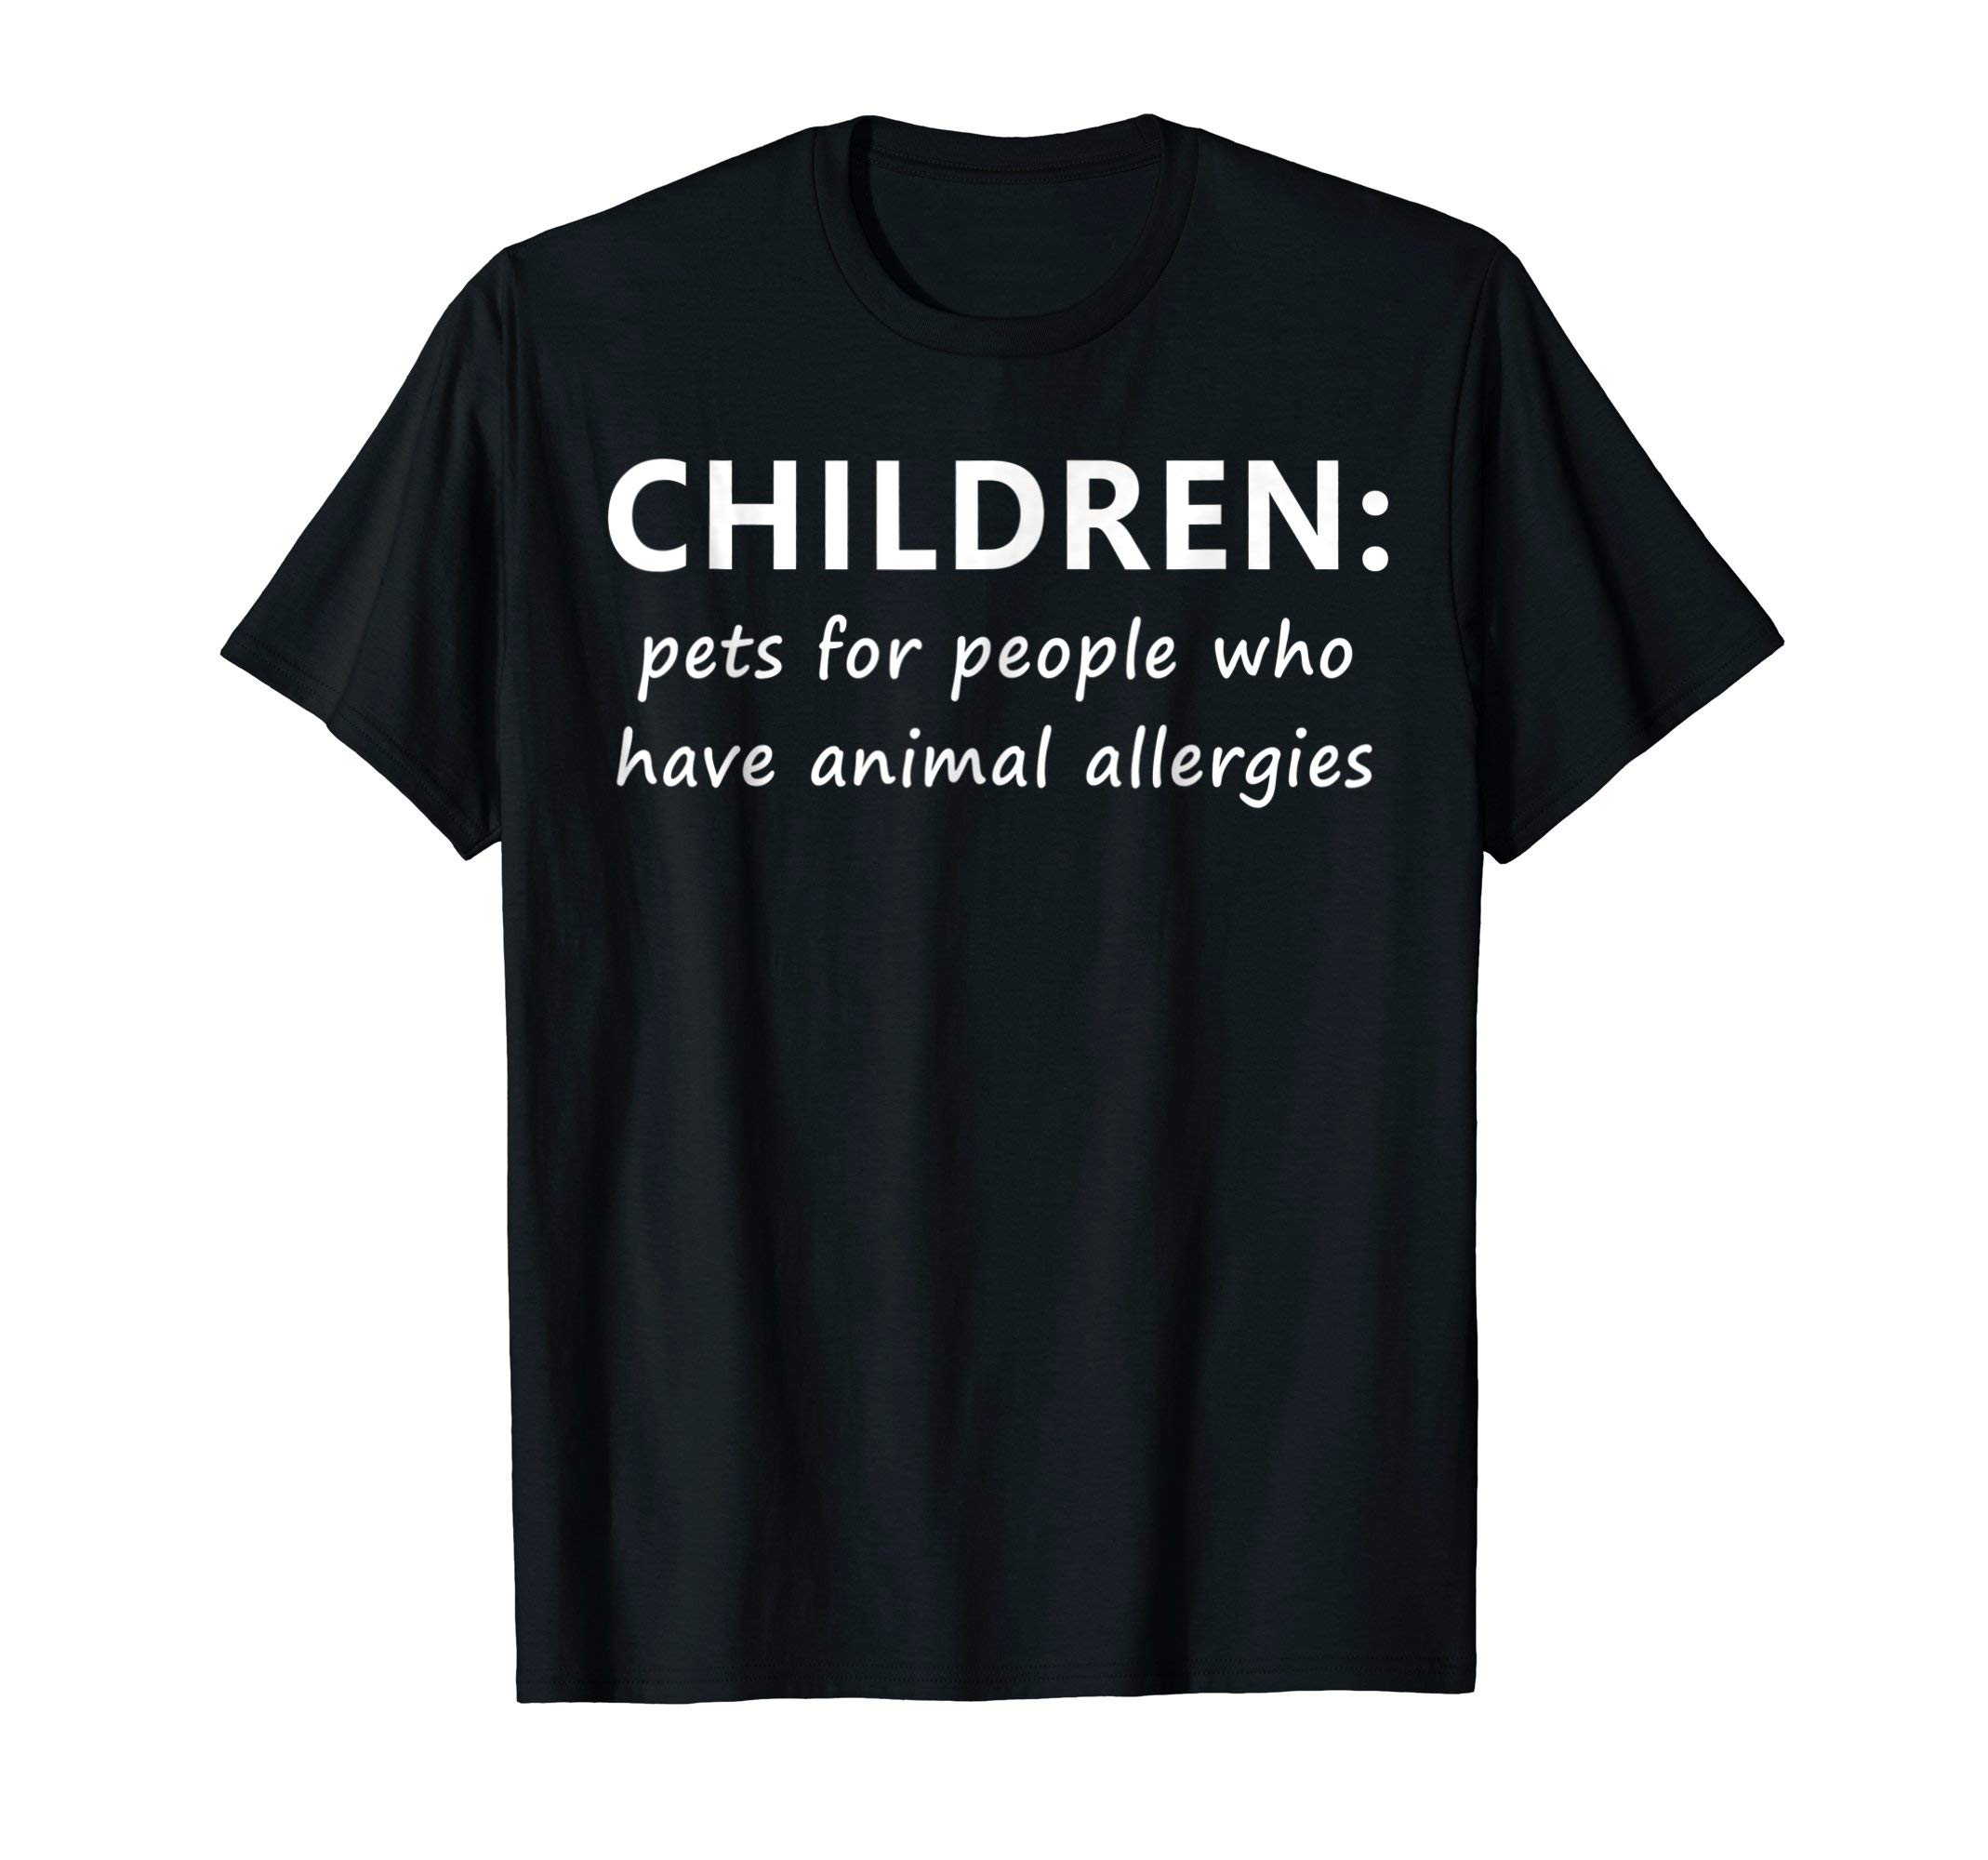 Children: Pets for People With Allergies Childfree Pet Shirt